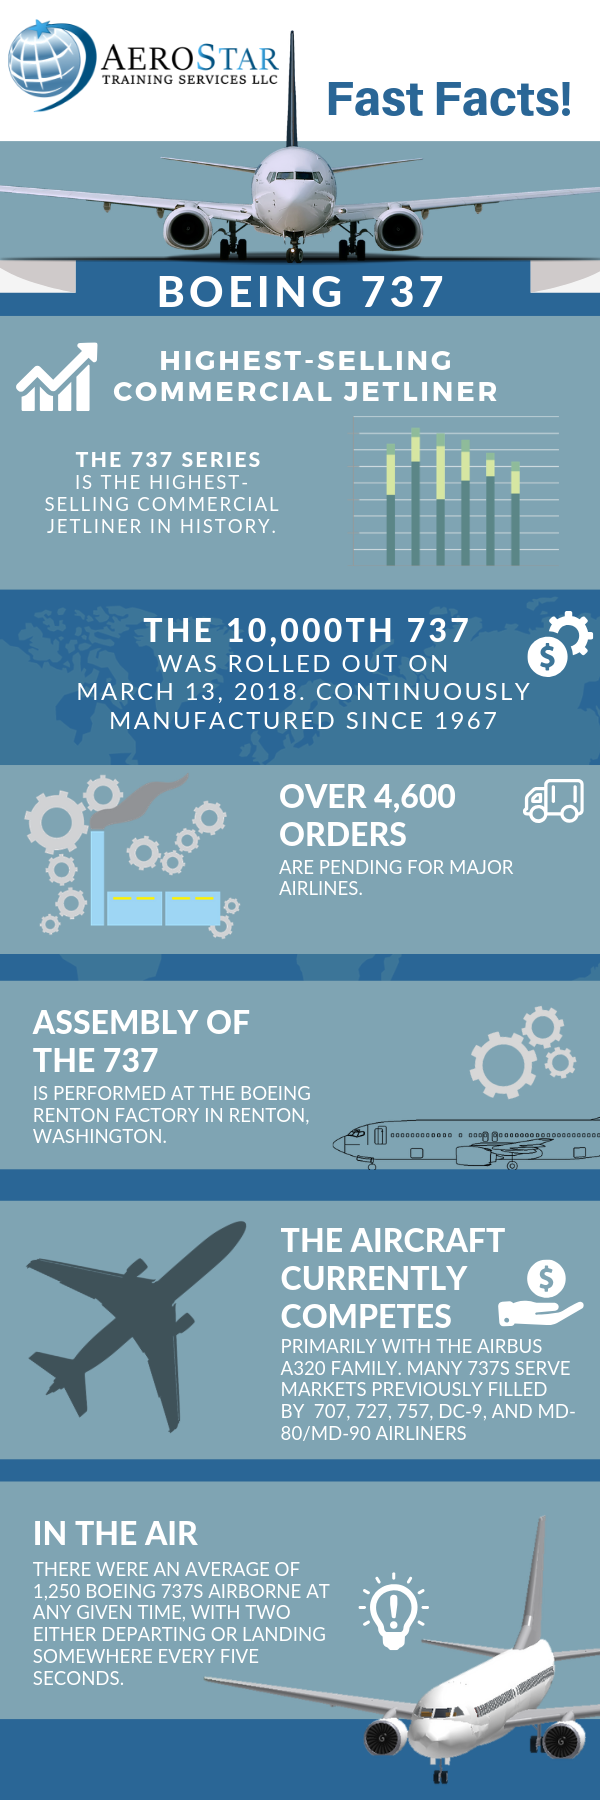 Boeing 737-  Fast Facts About the B737 Airliner